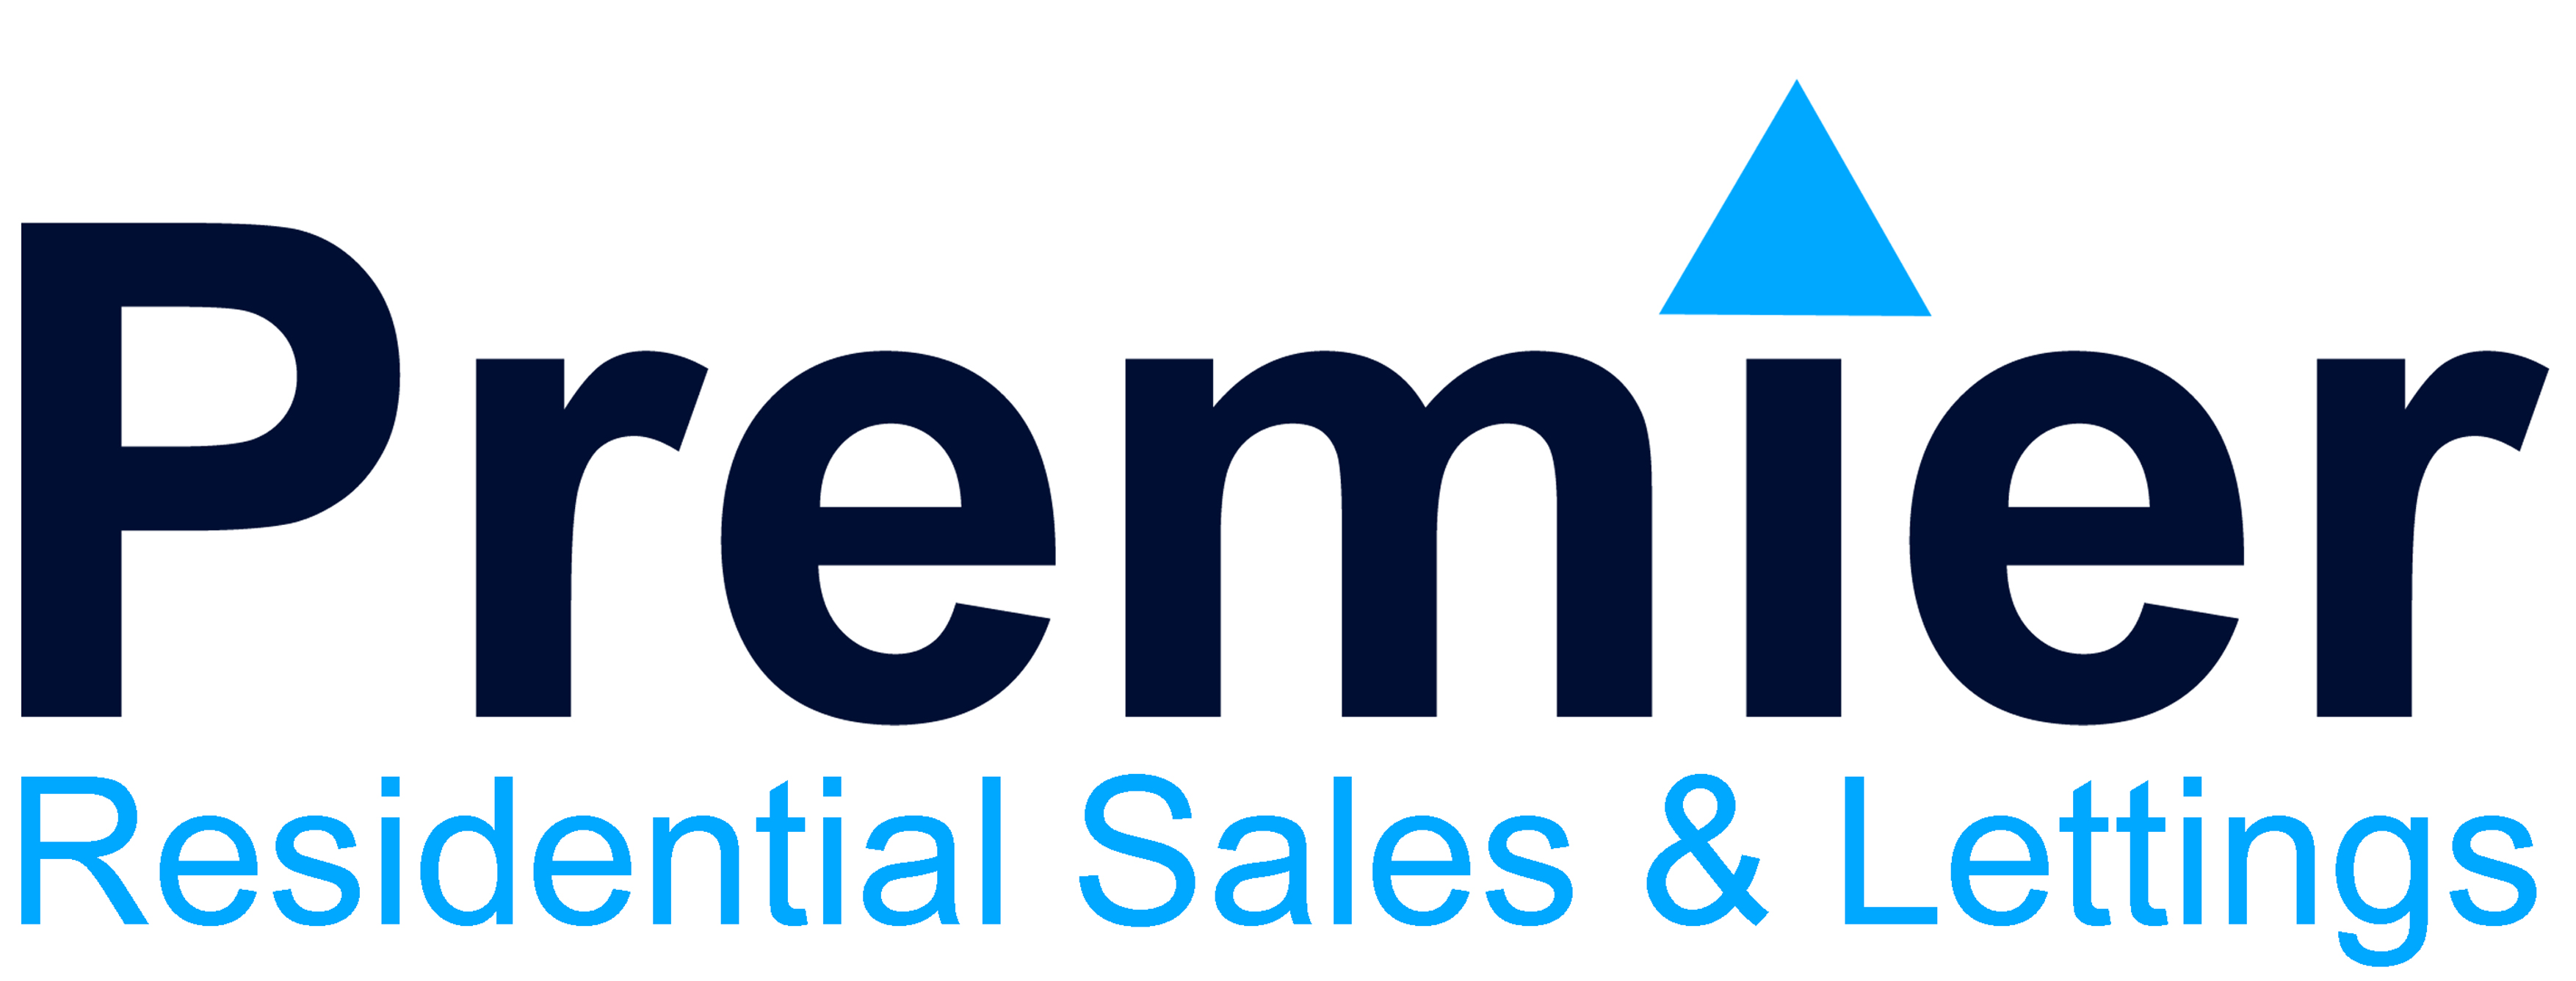 Premier Residential Sales & Lettings